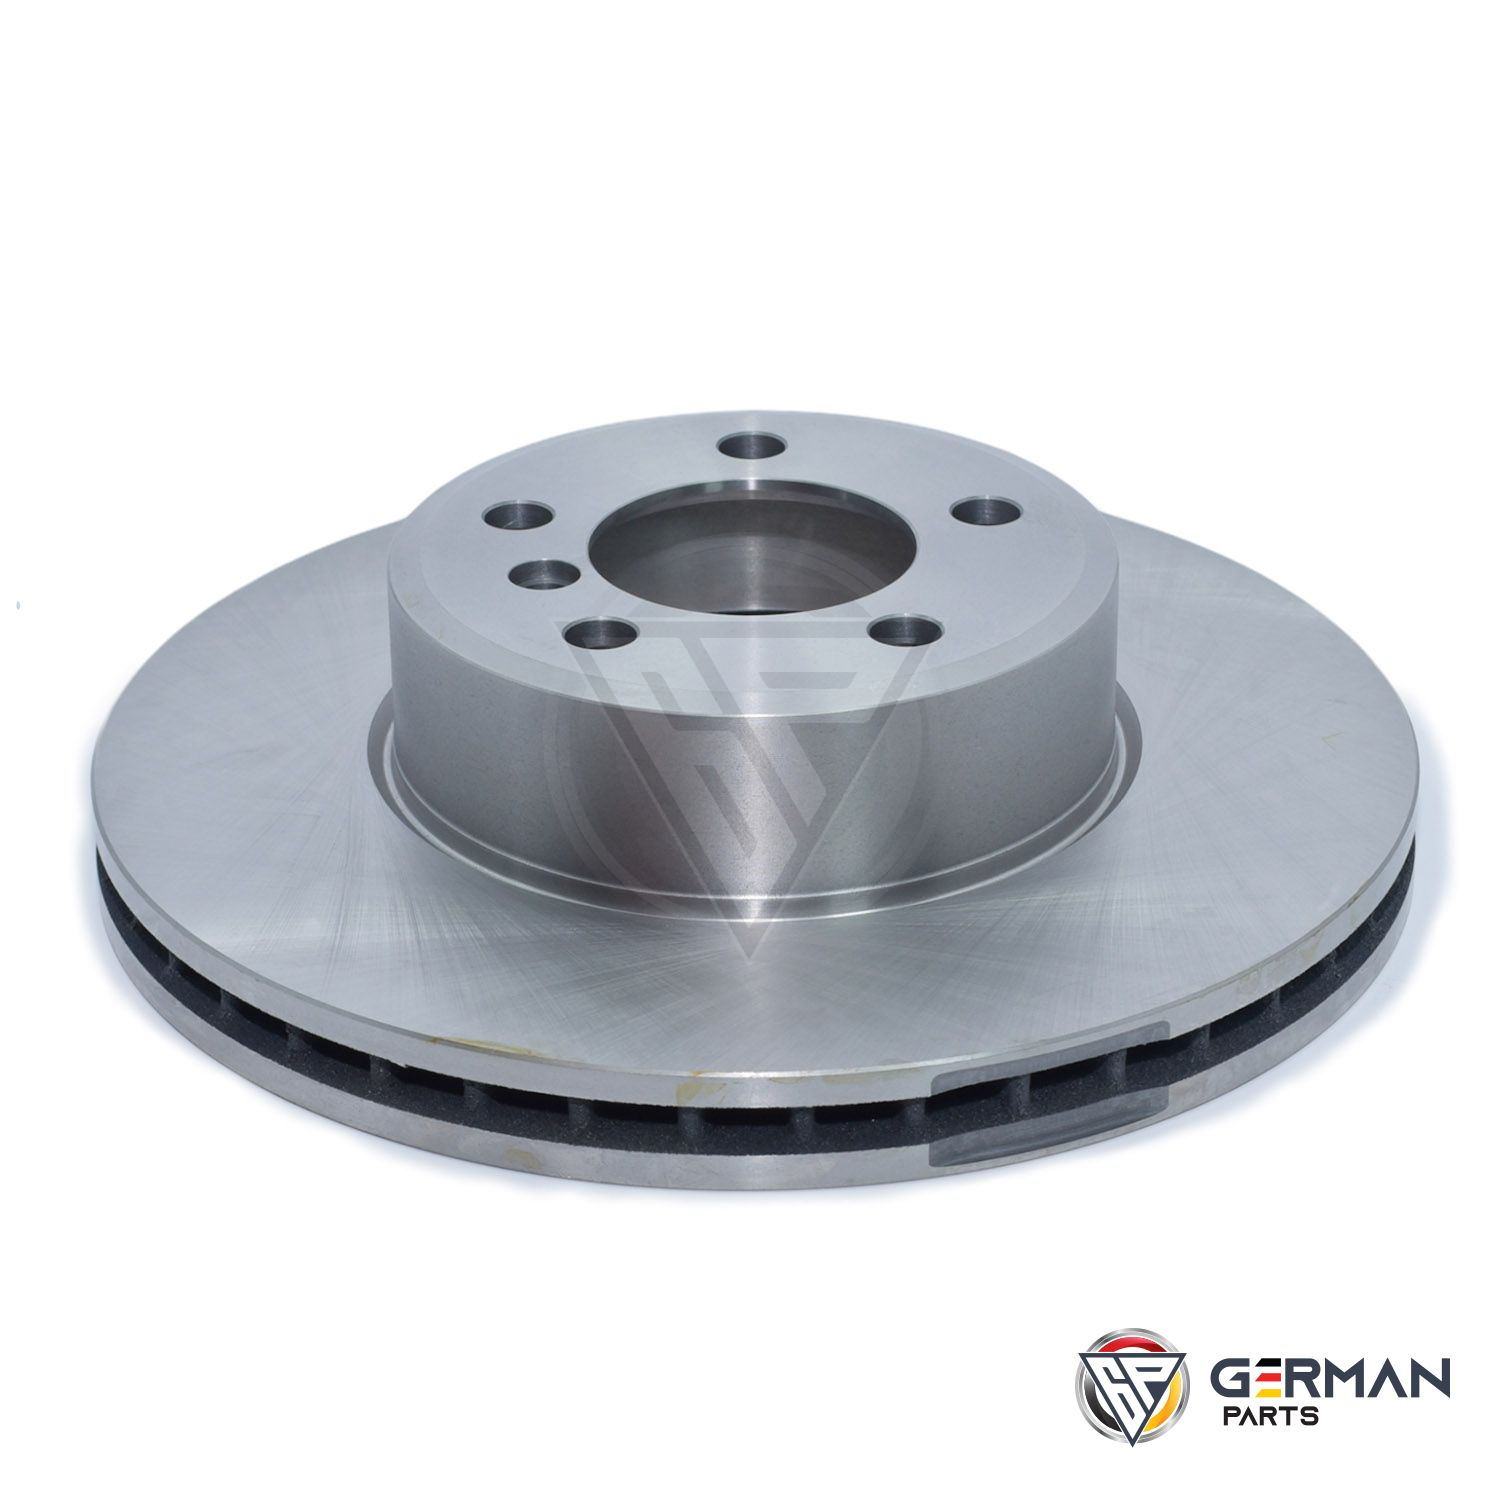 Buy Meyle Front Brake Disc 34116750265 - German Parts